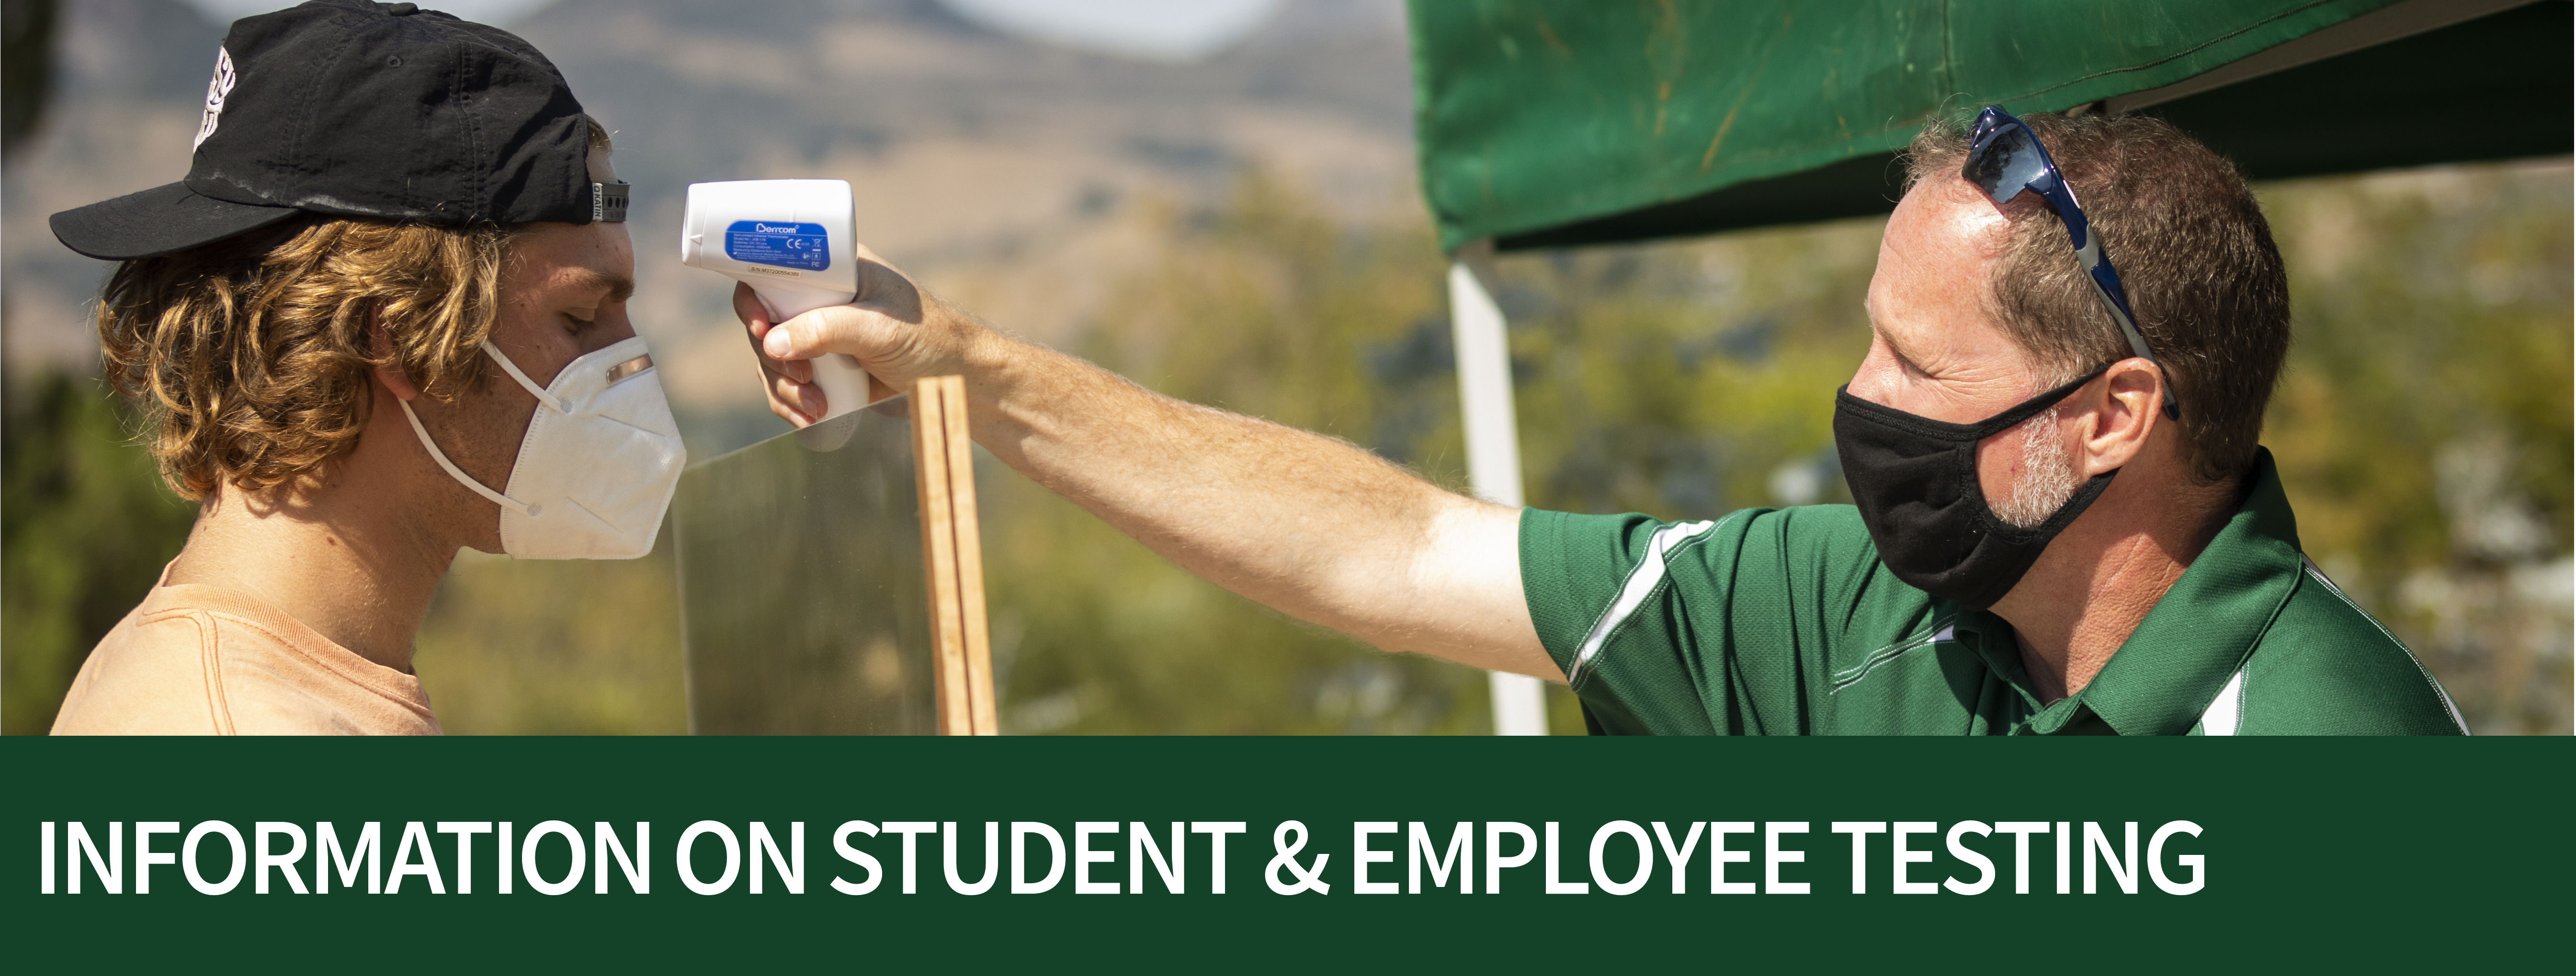 Student gets temperature checked on campus - Information on student and employee testing